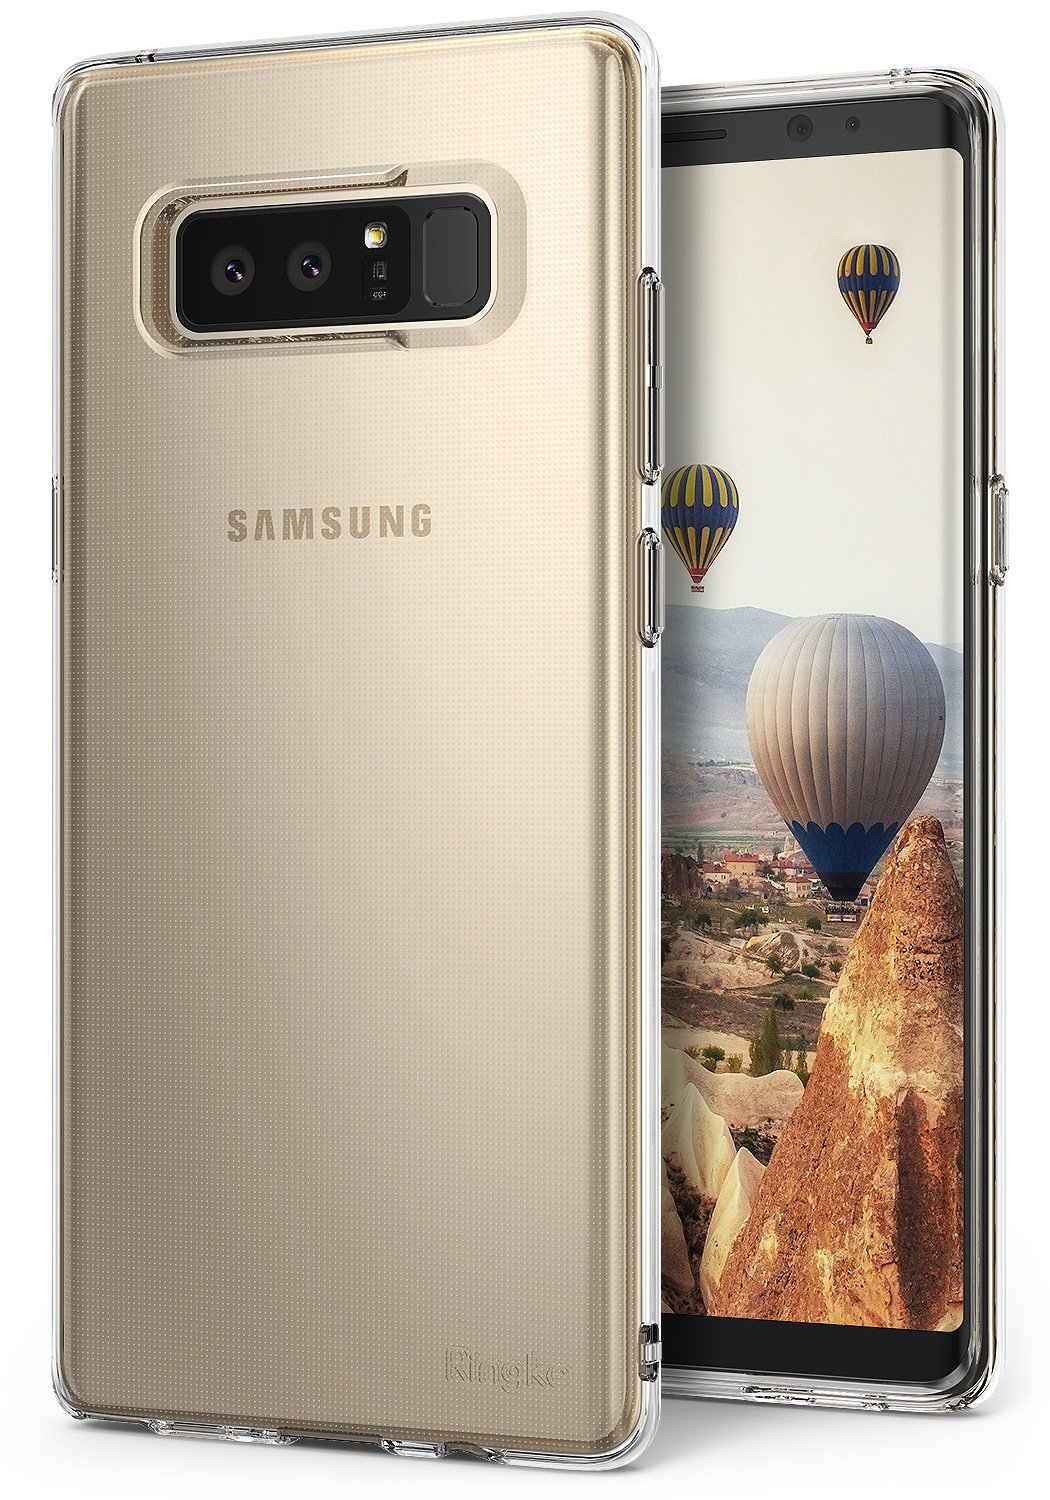 Ringke Air Θήκη Σιλικόνης Samsung Galaxy Note 8 - Clear (RGK462CL)